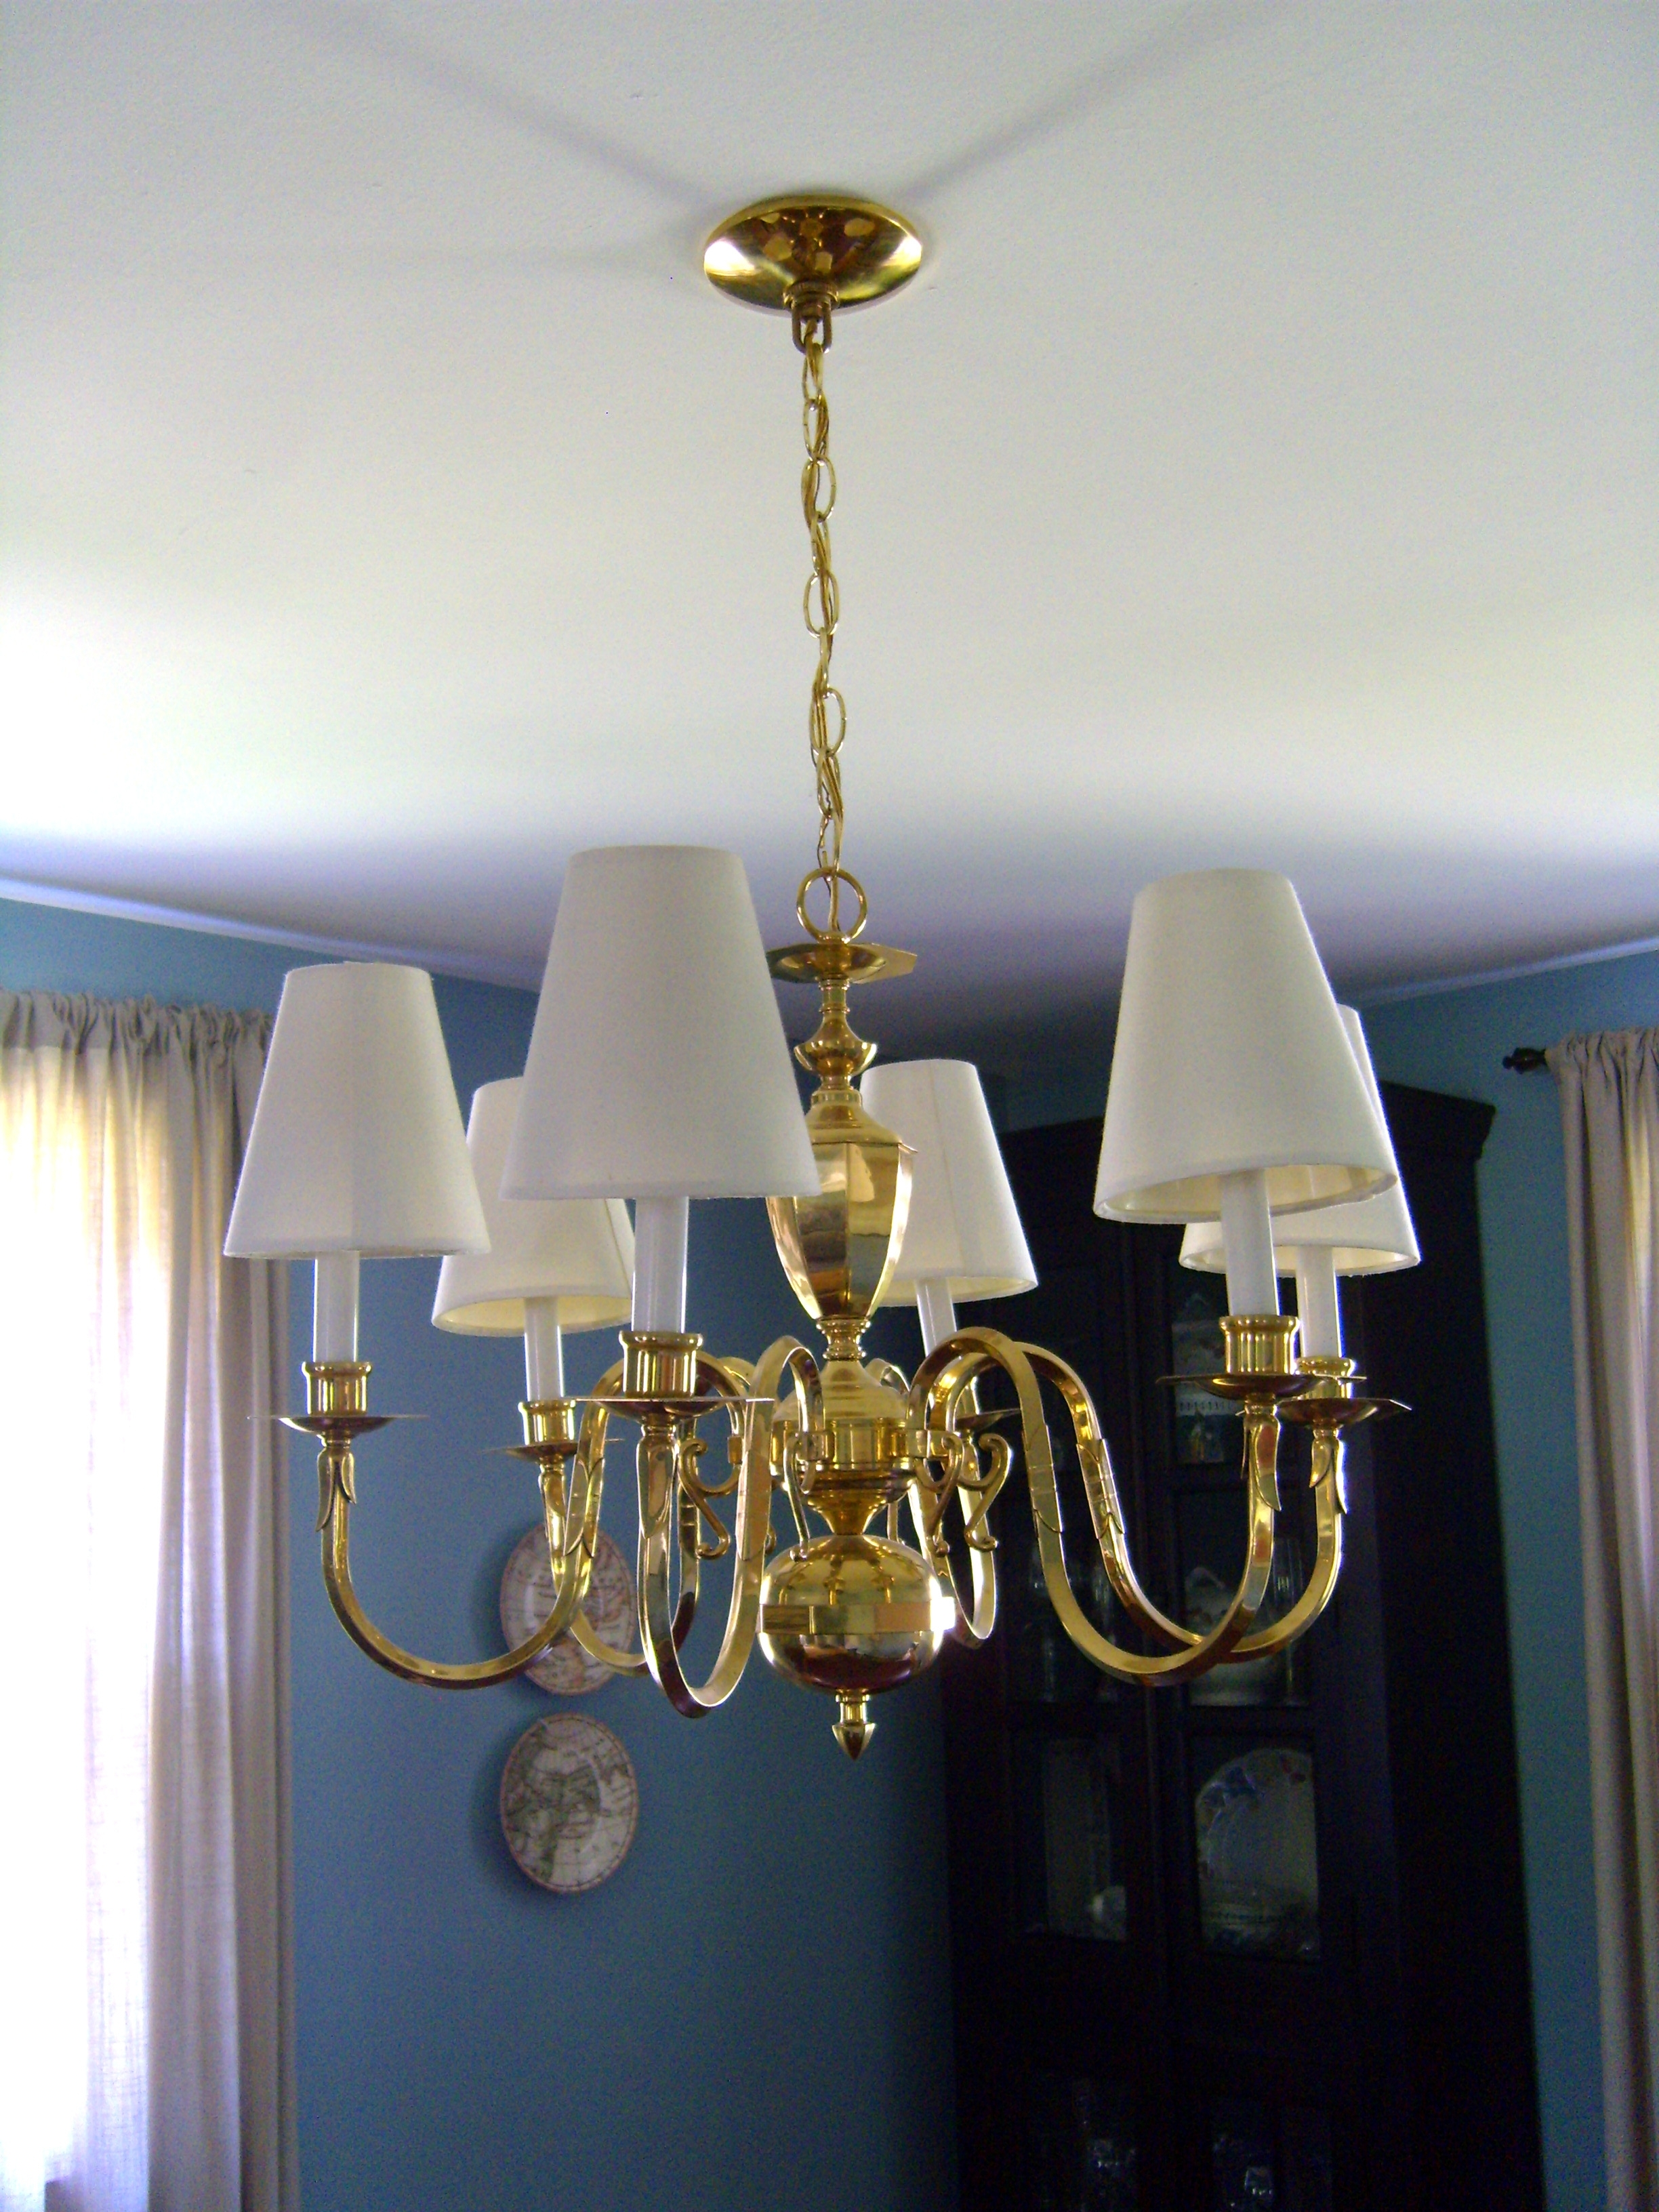 Popular Chandelier Light Shades In Furniture : Small Drum Lamp Shades Chandelier Saving Space Mini (View 5 of 15)